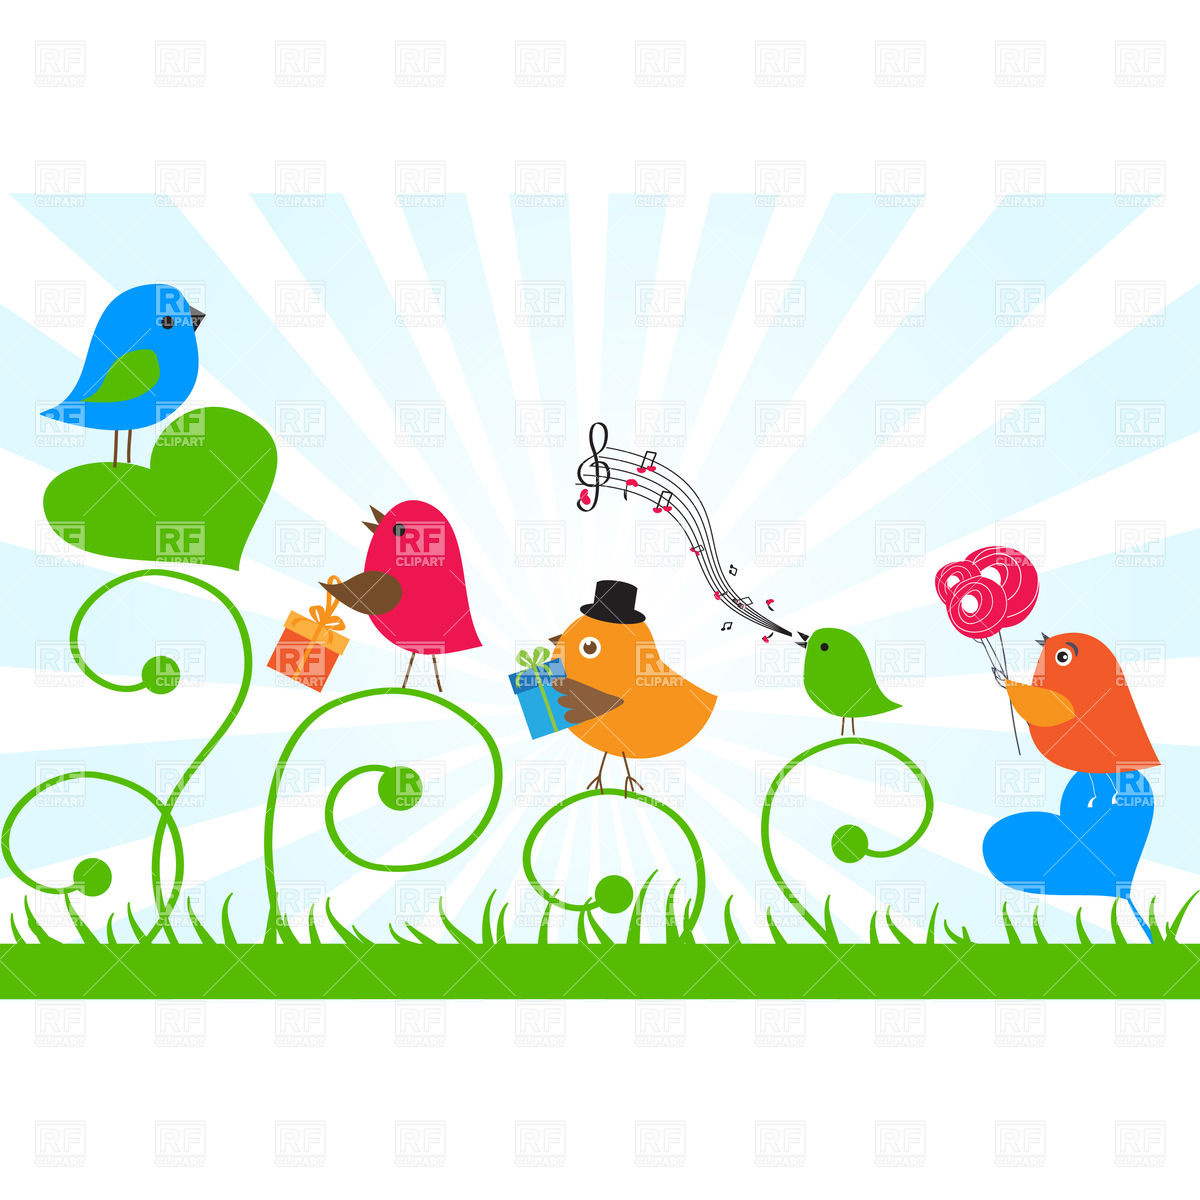 free clipart birthday greetings ; birthday-card-birds-send-greetings-to-a-friend-Download-Royalty-free-Vector-File-EPS-44367